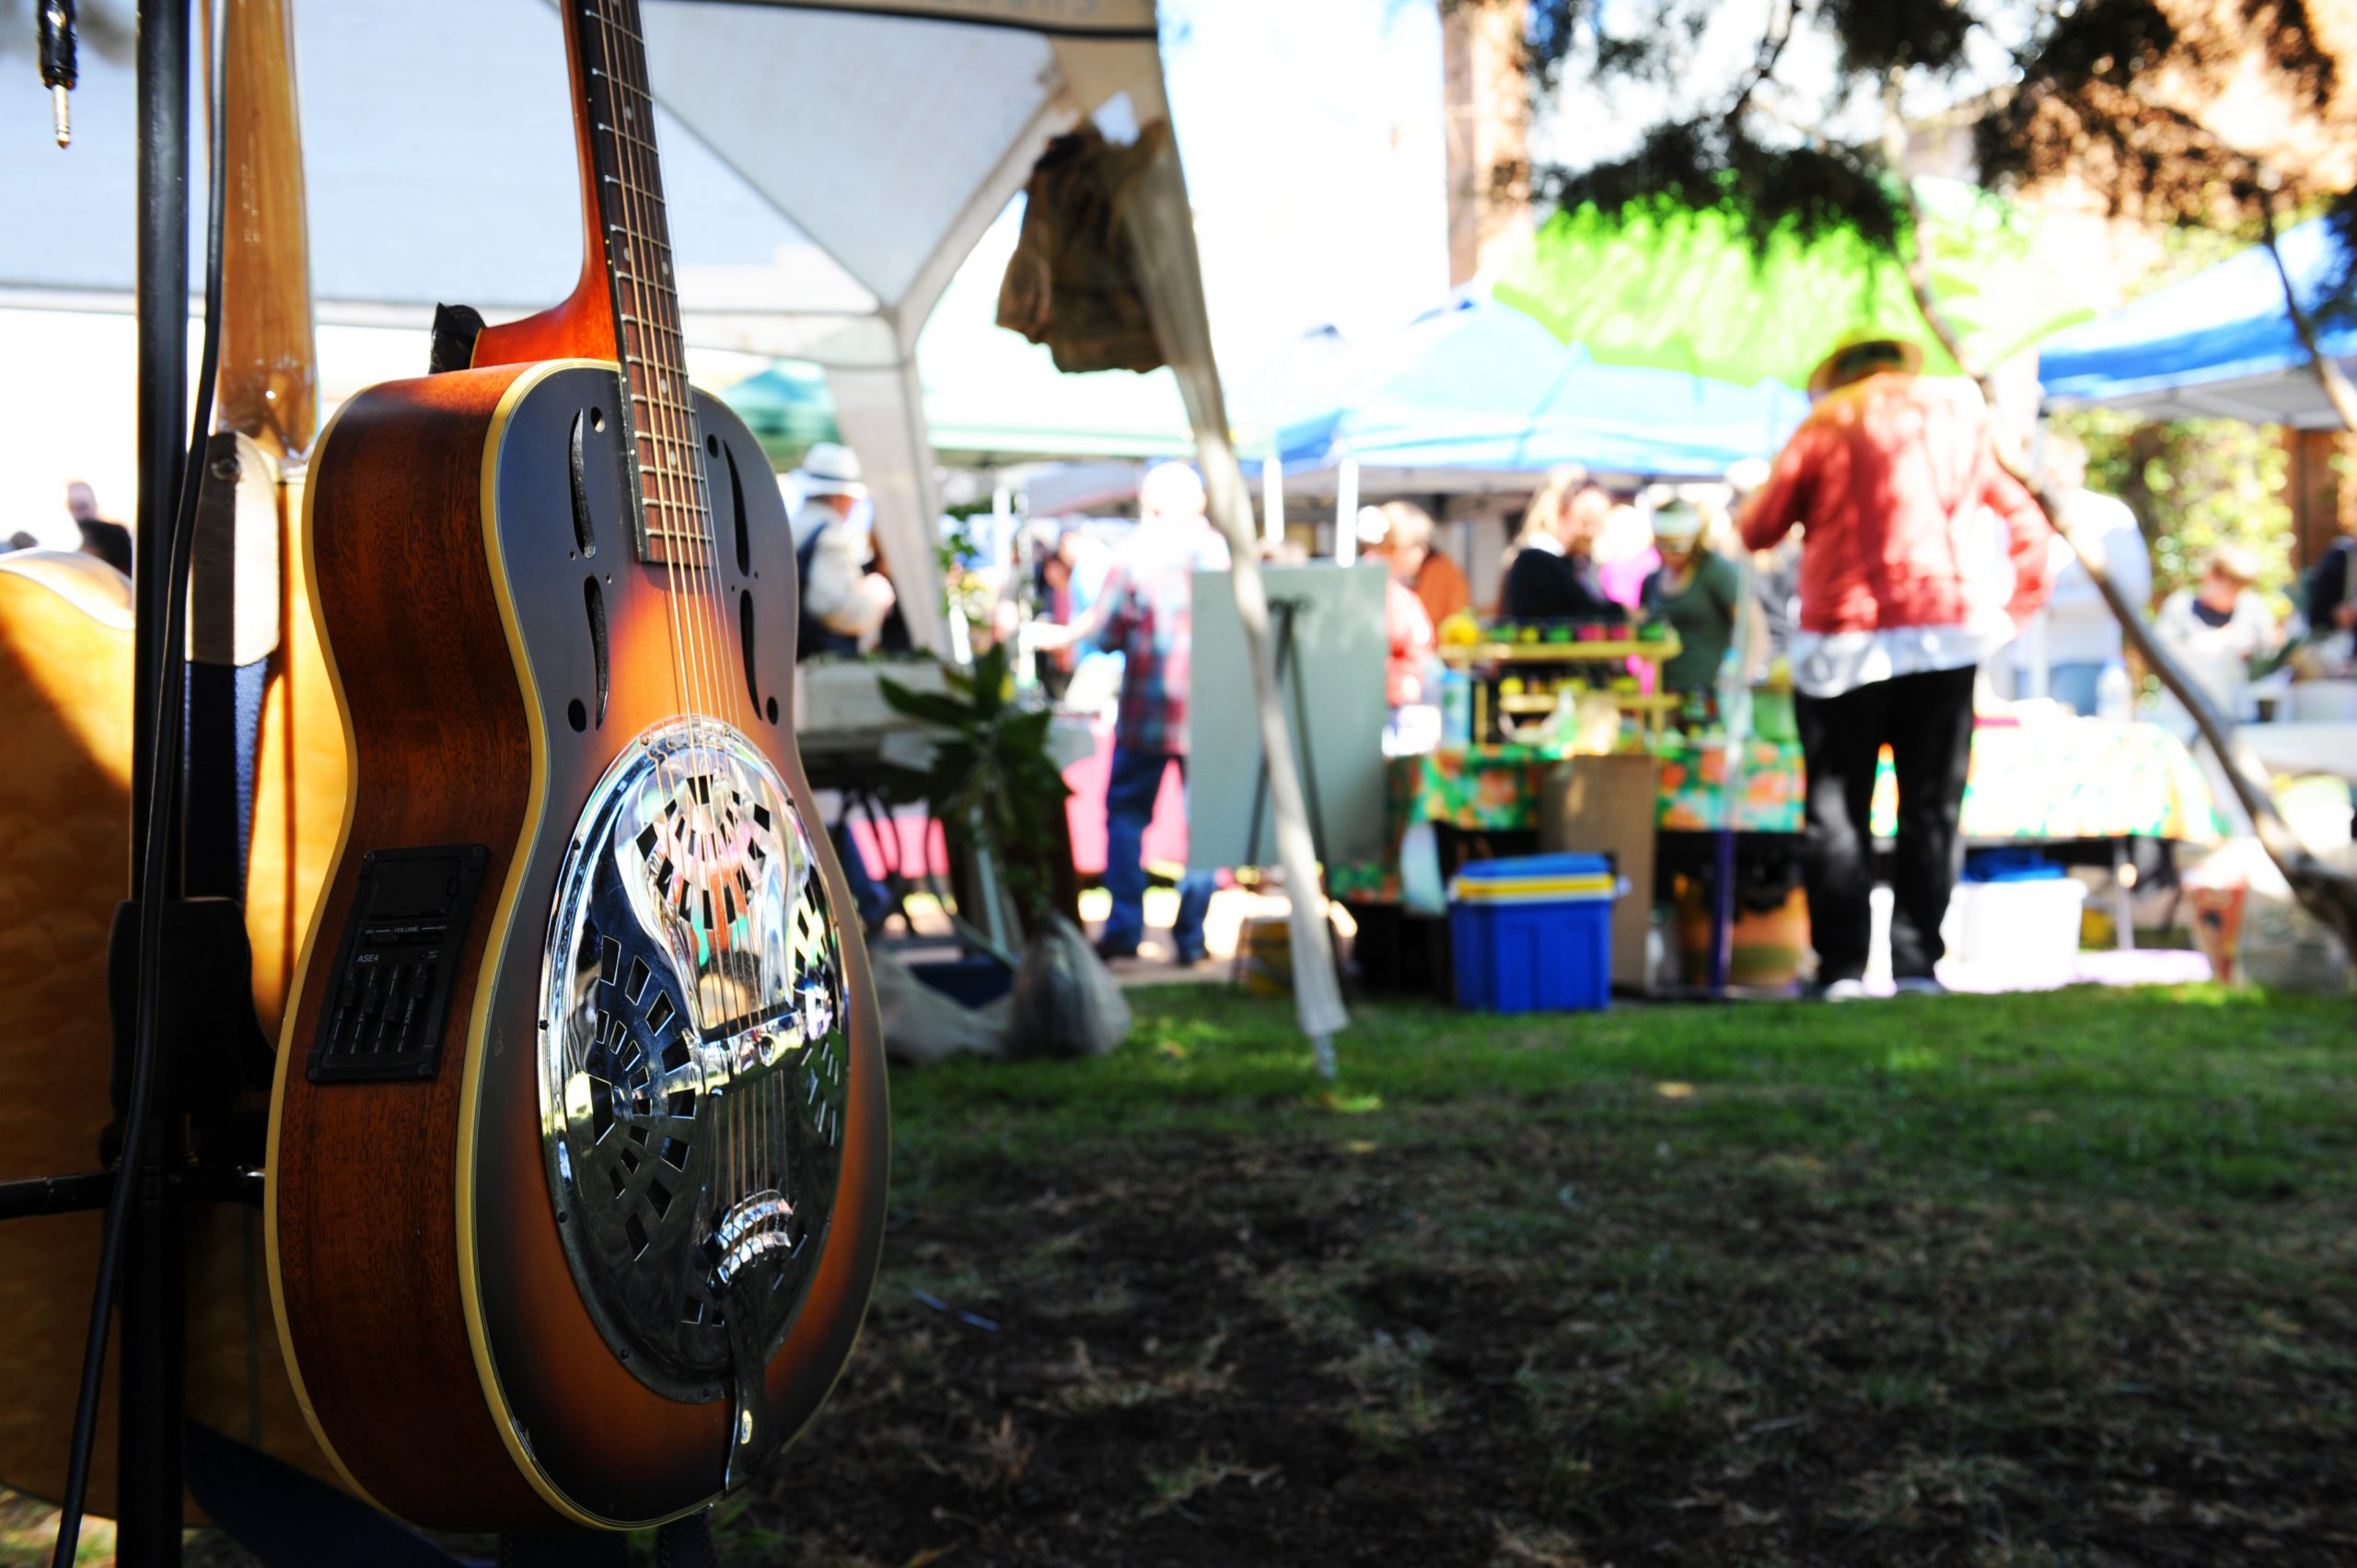 Live Music at Mudgee Markets